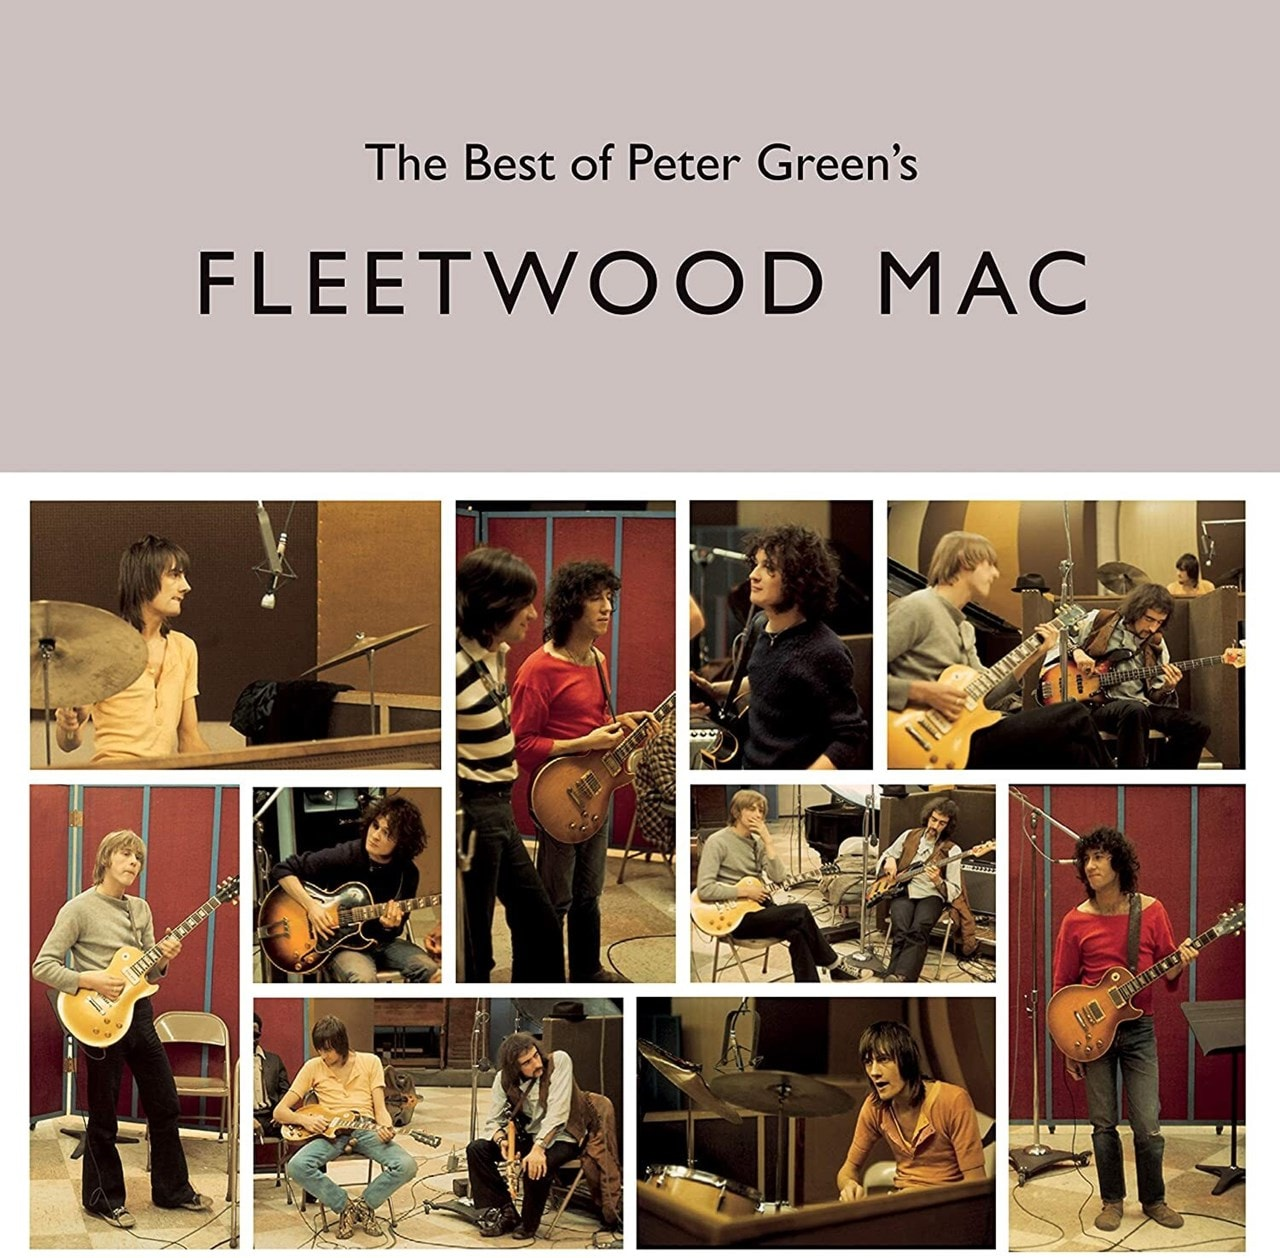 Fleetwood Mac - The Best of Peter Green's Fleetwood Mac 2LP Vinyl Record Album